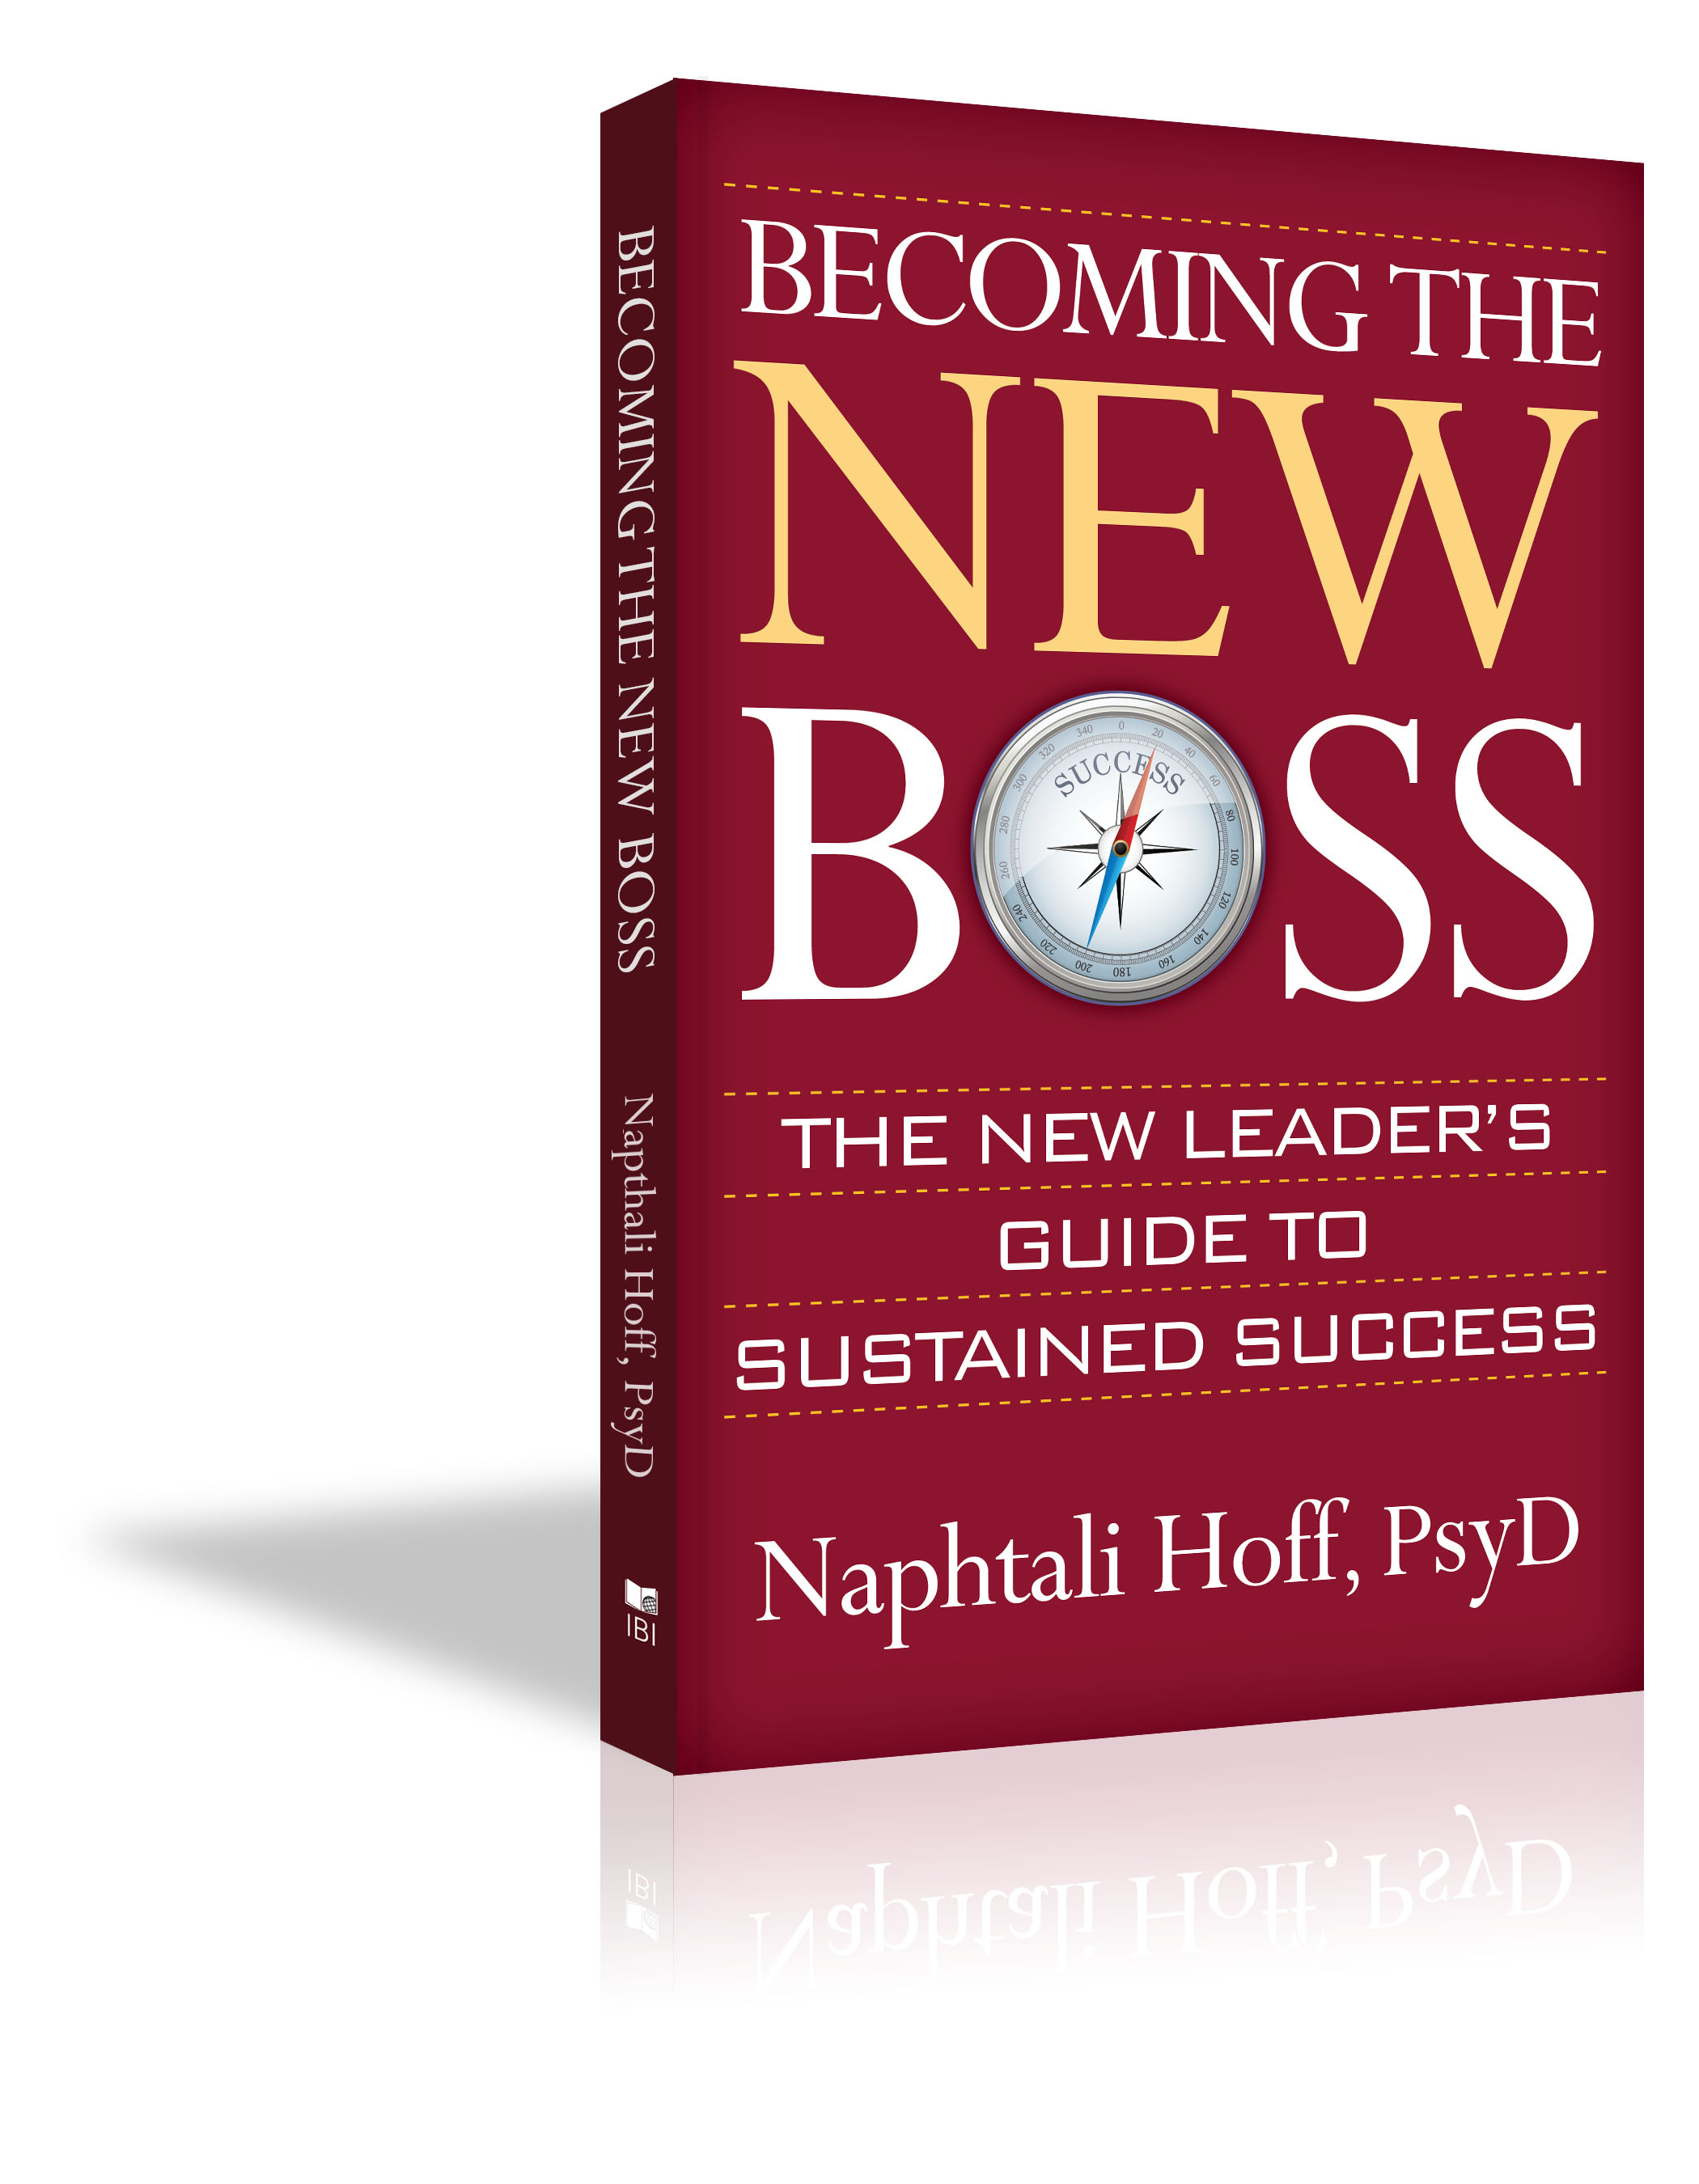 Becoming the New Boss: The New Leader's Guide to Sustained Success